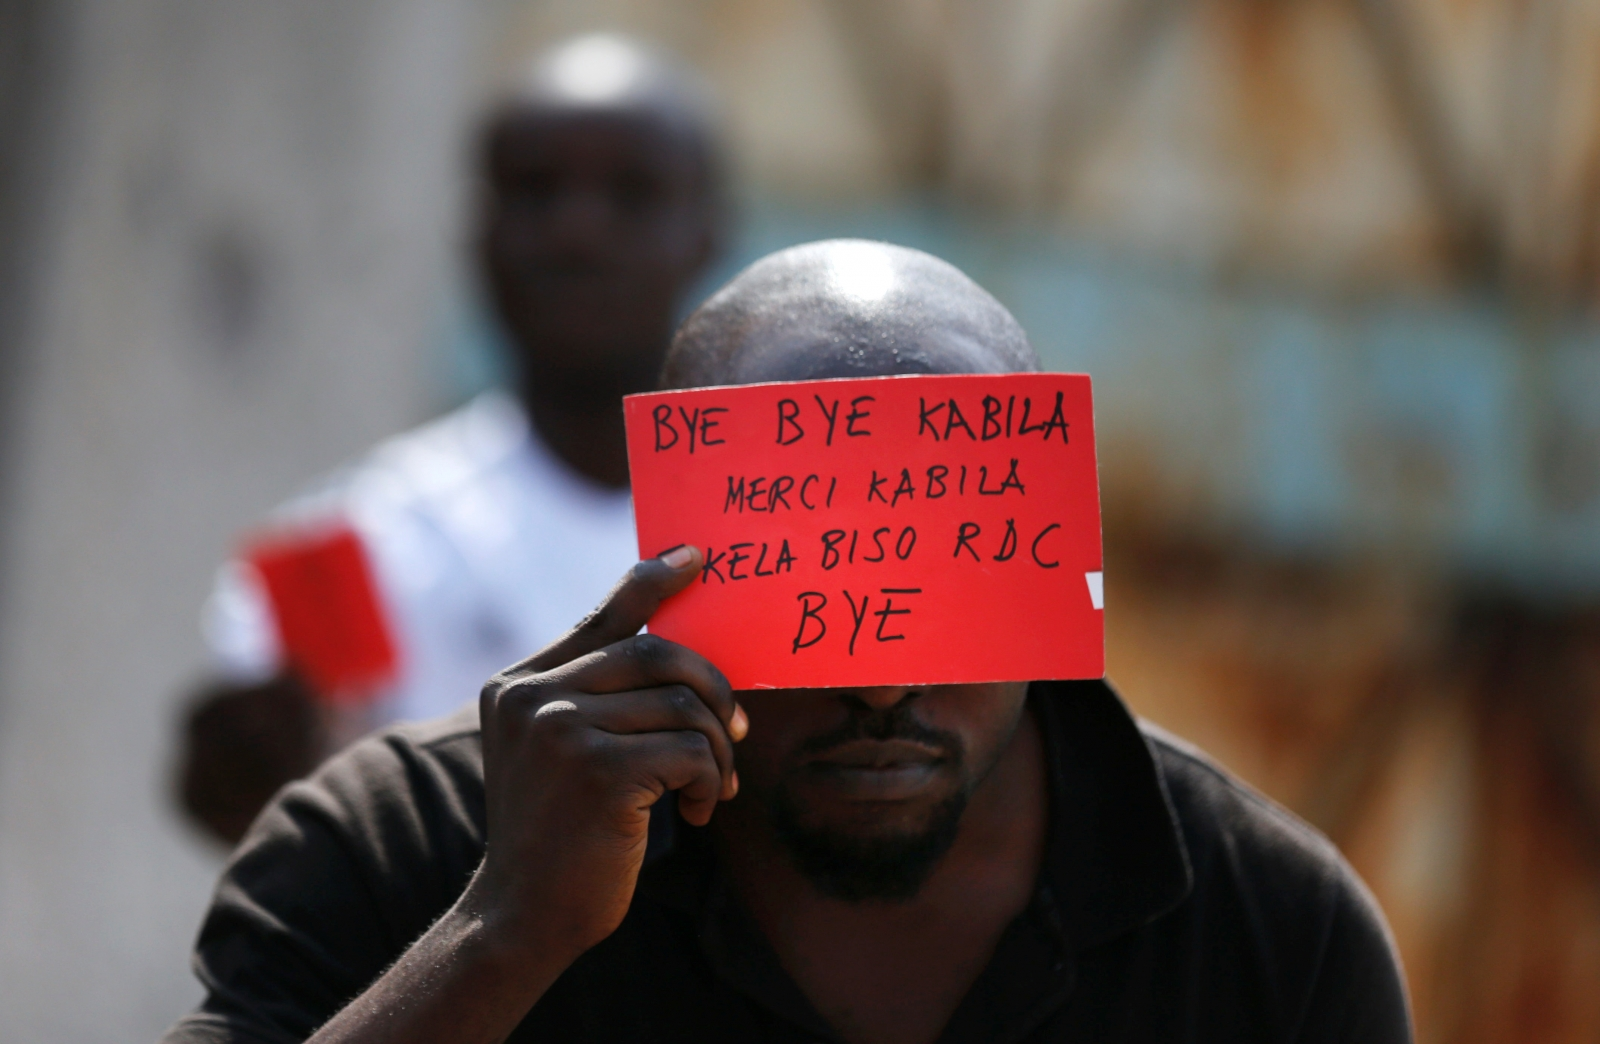 Kabila's red card